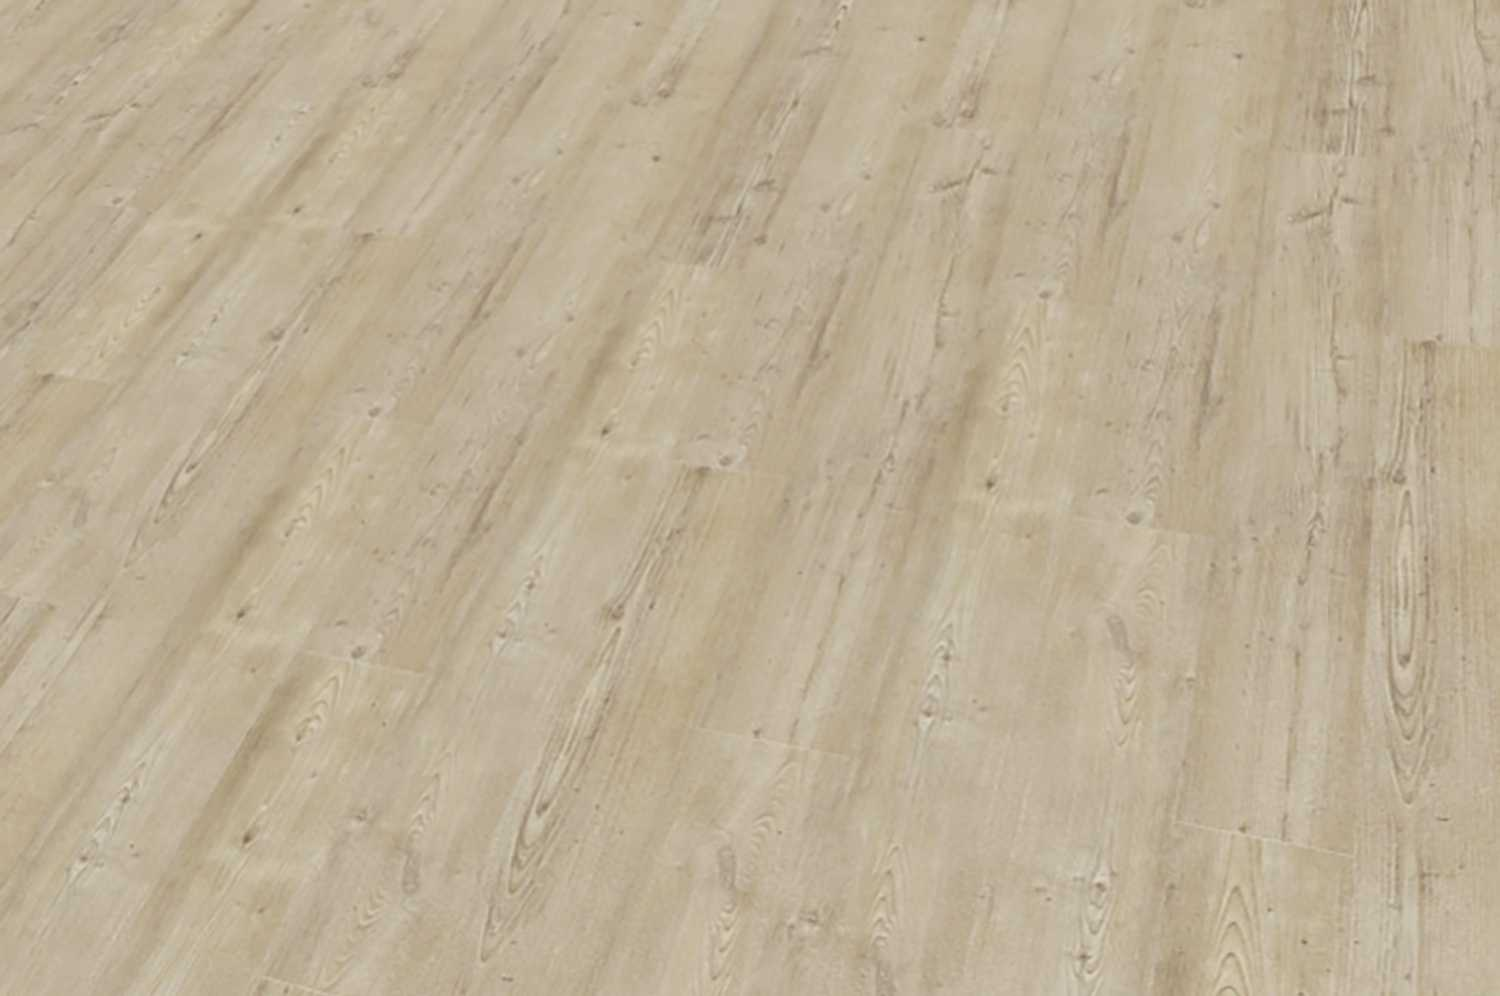 vinyl-mflor-pine-wood-smoky-pine